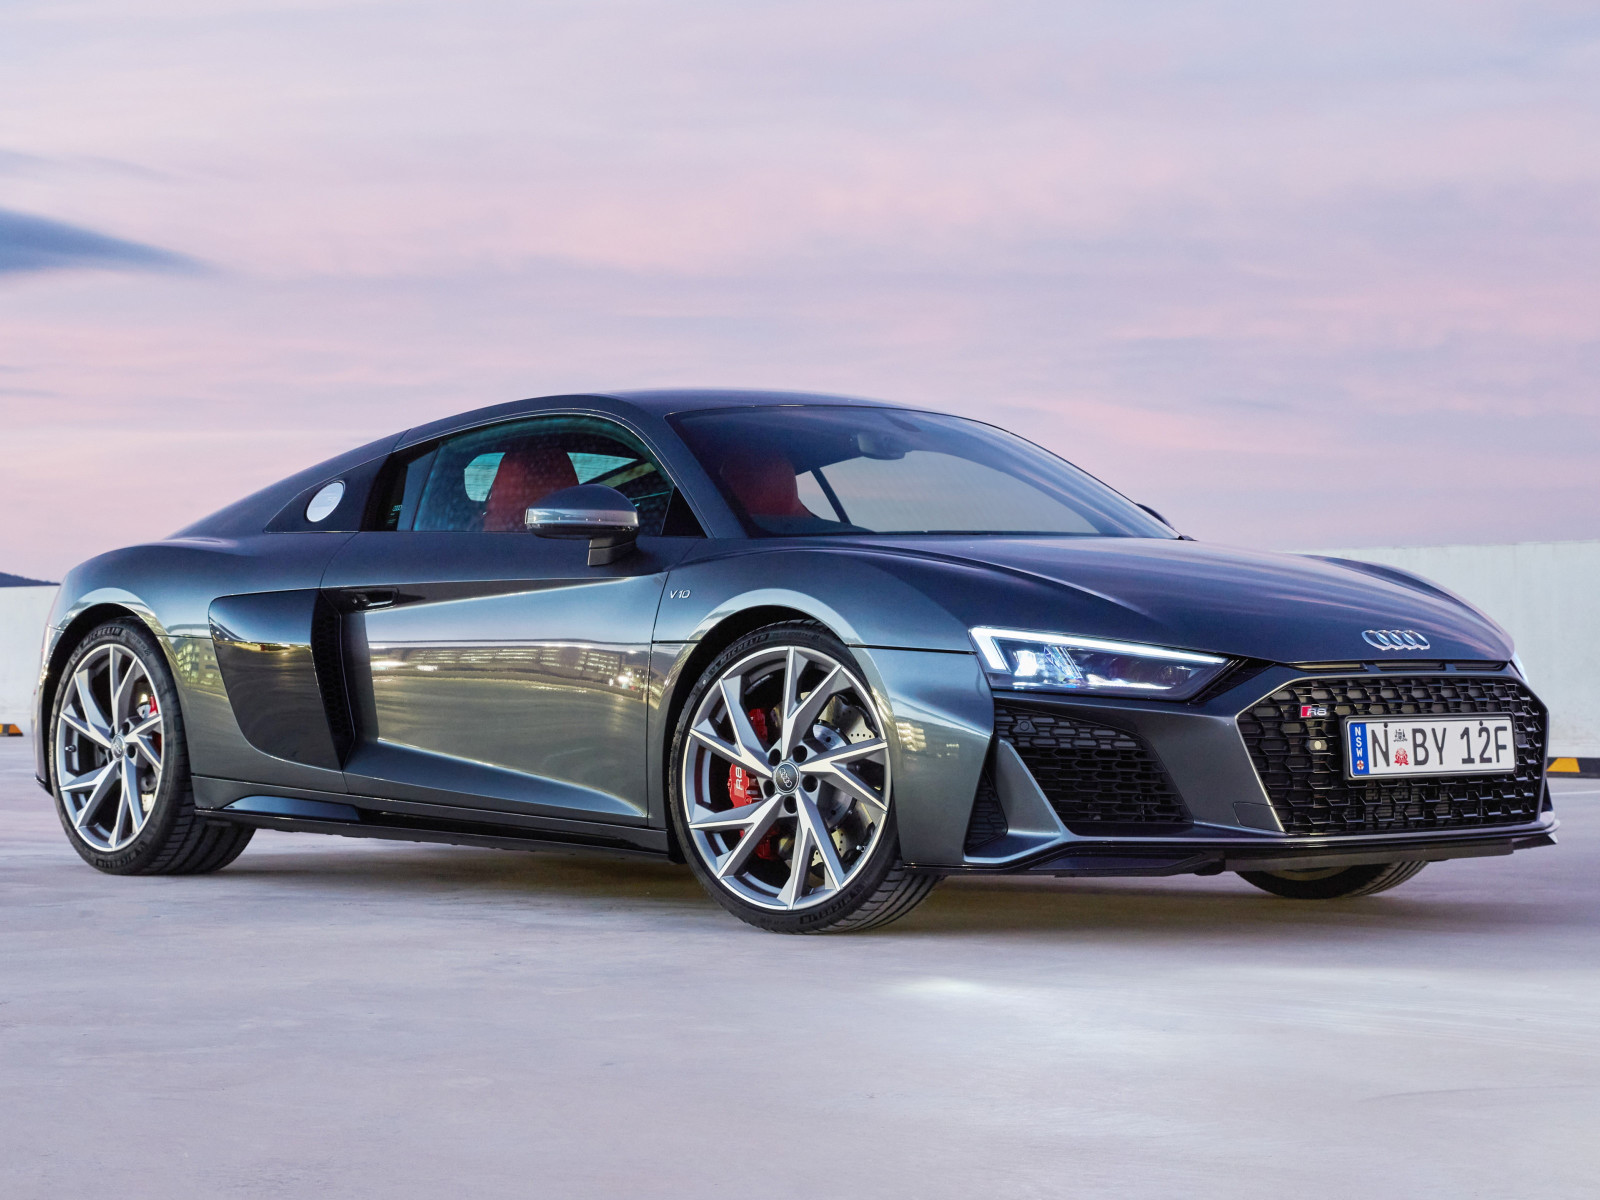 Audi R8 V10 RWD Coupe wallpaper 1600x1200